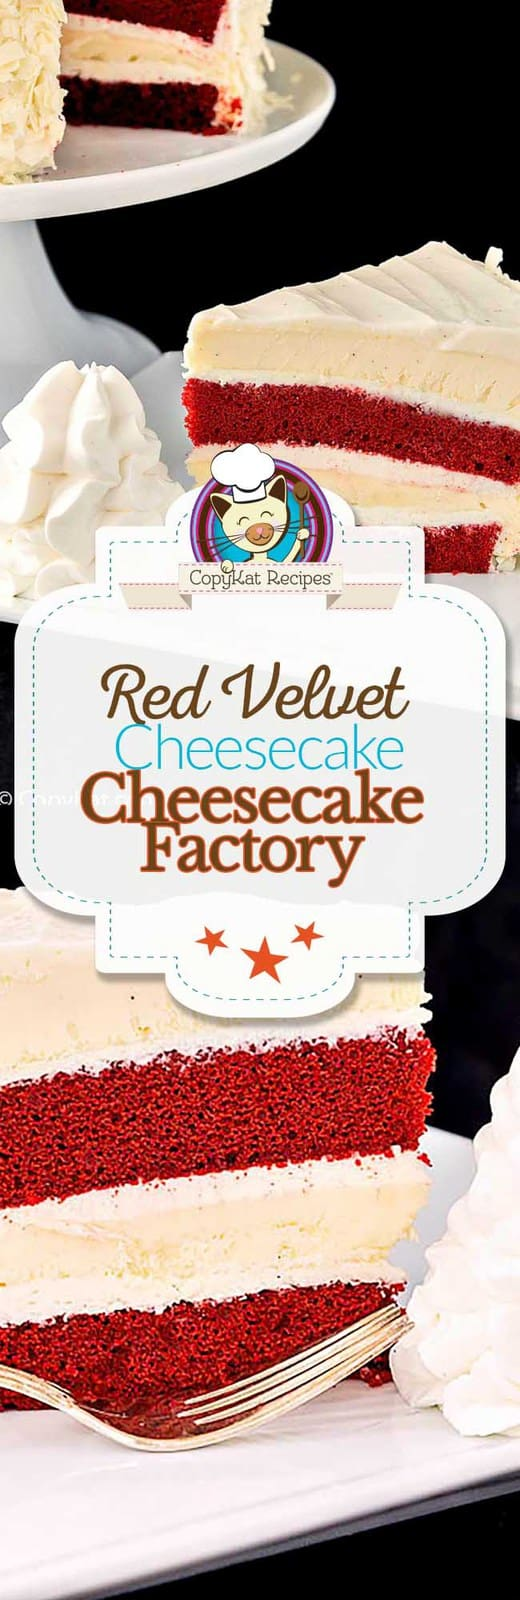 You can recreate your own Cheesecake Factory Red Velvet cheesecake at home with this copycat recipe.